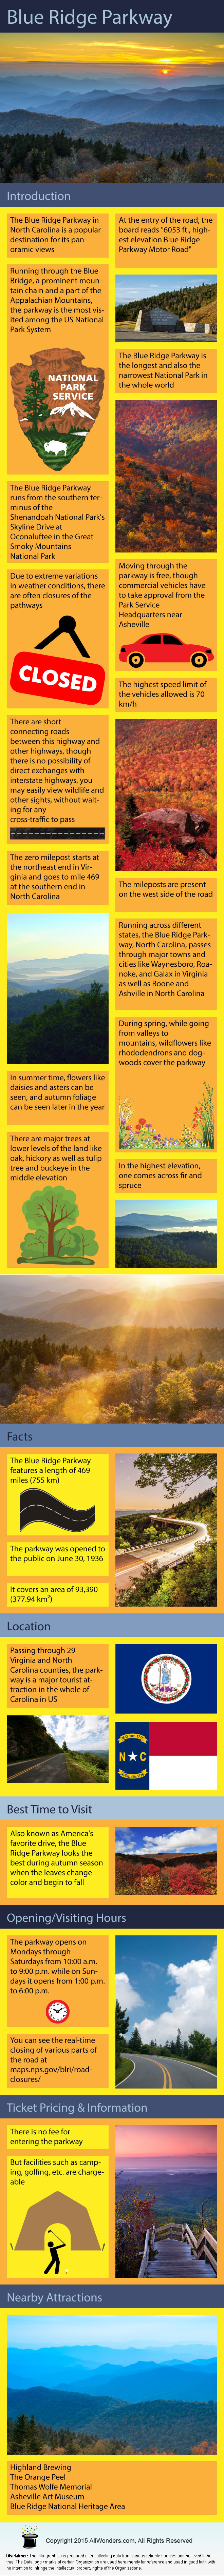 What is Blue Ridge Parkway - All About Blue Ridge Parkway [Infographic]